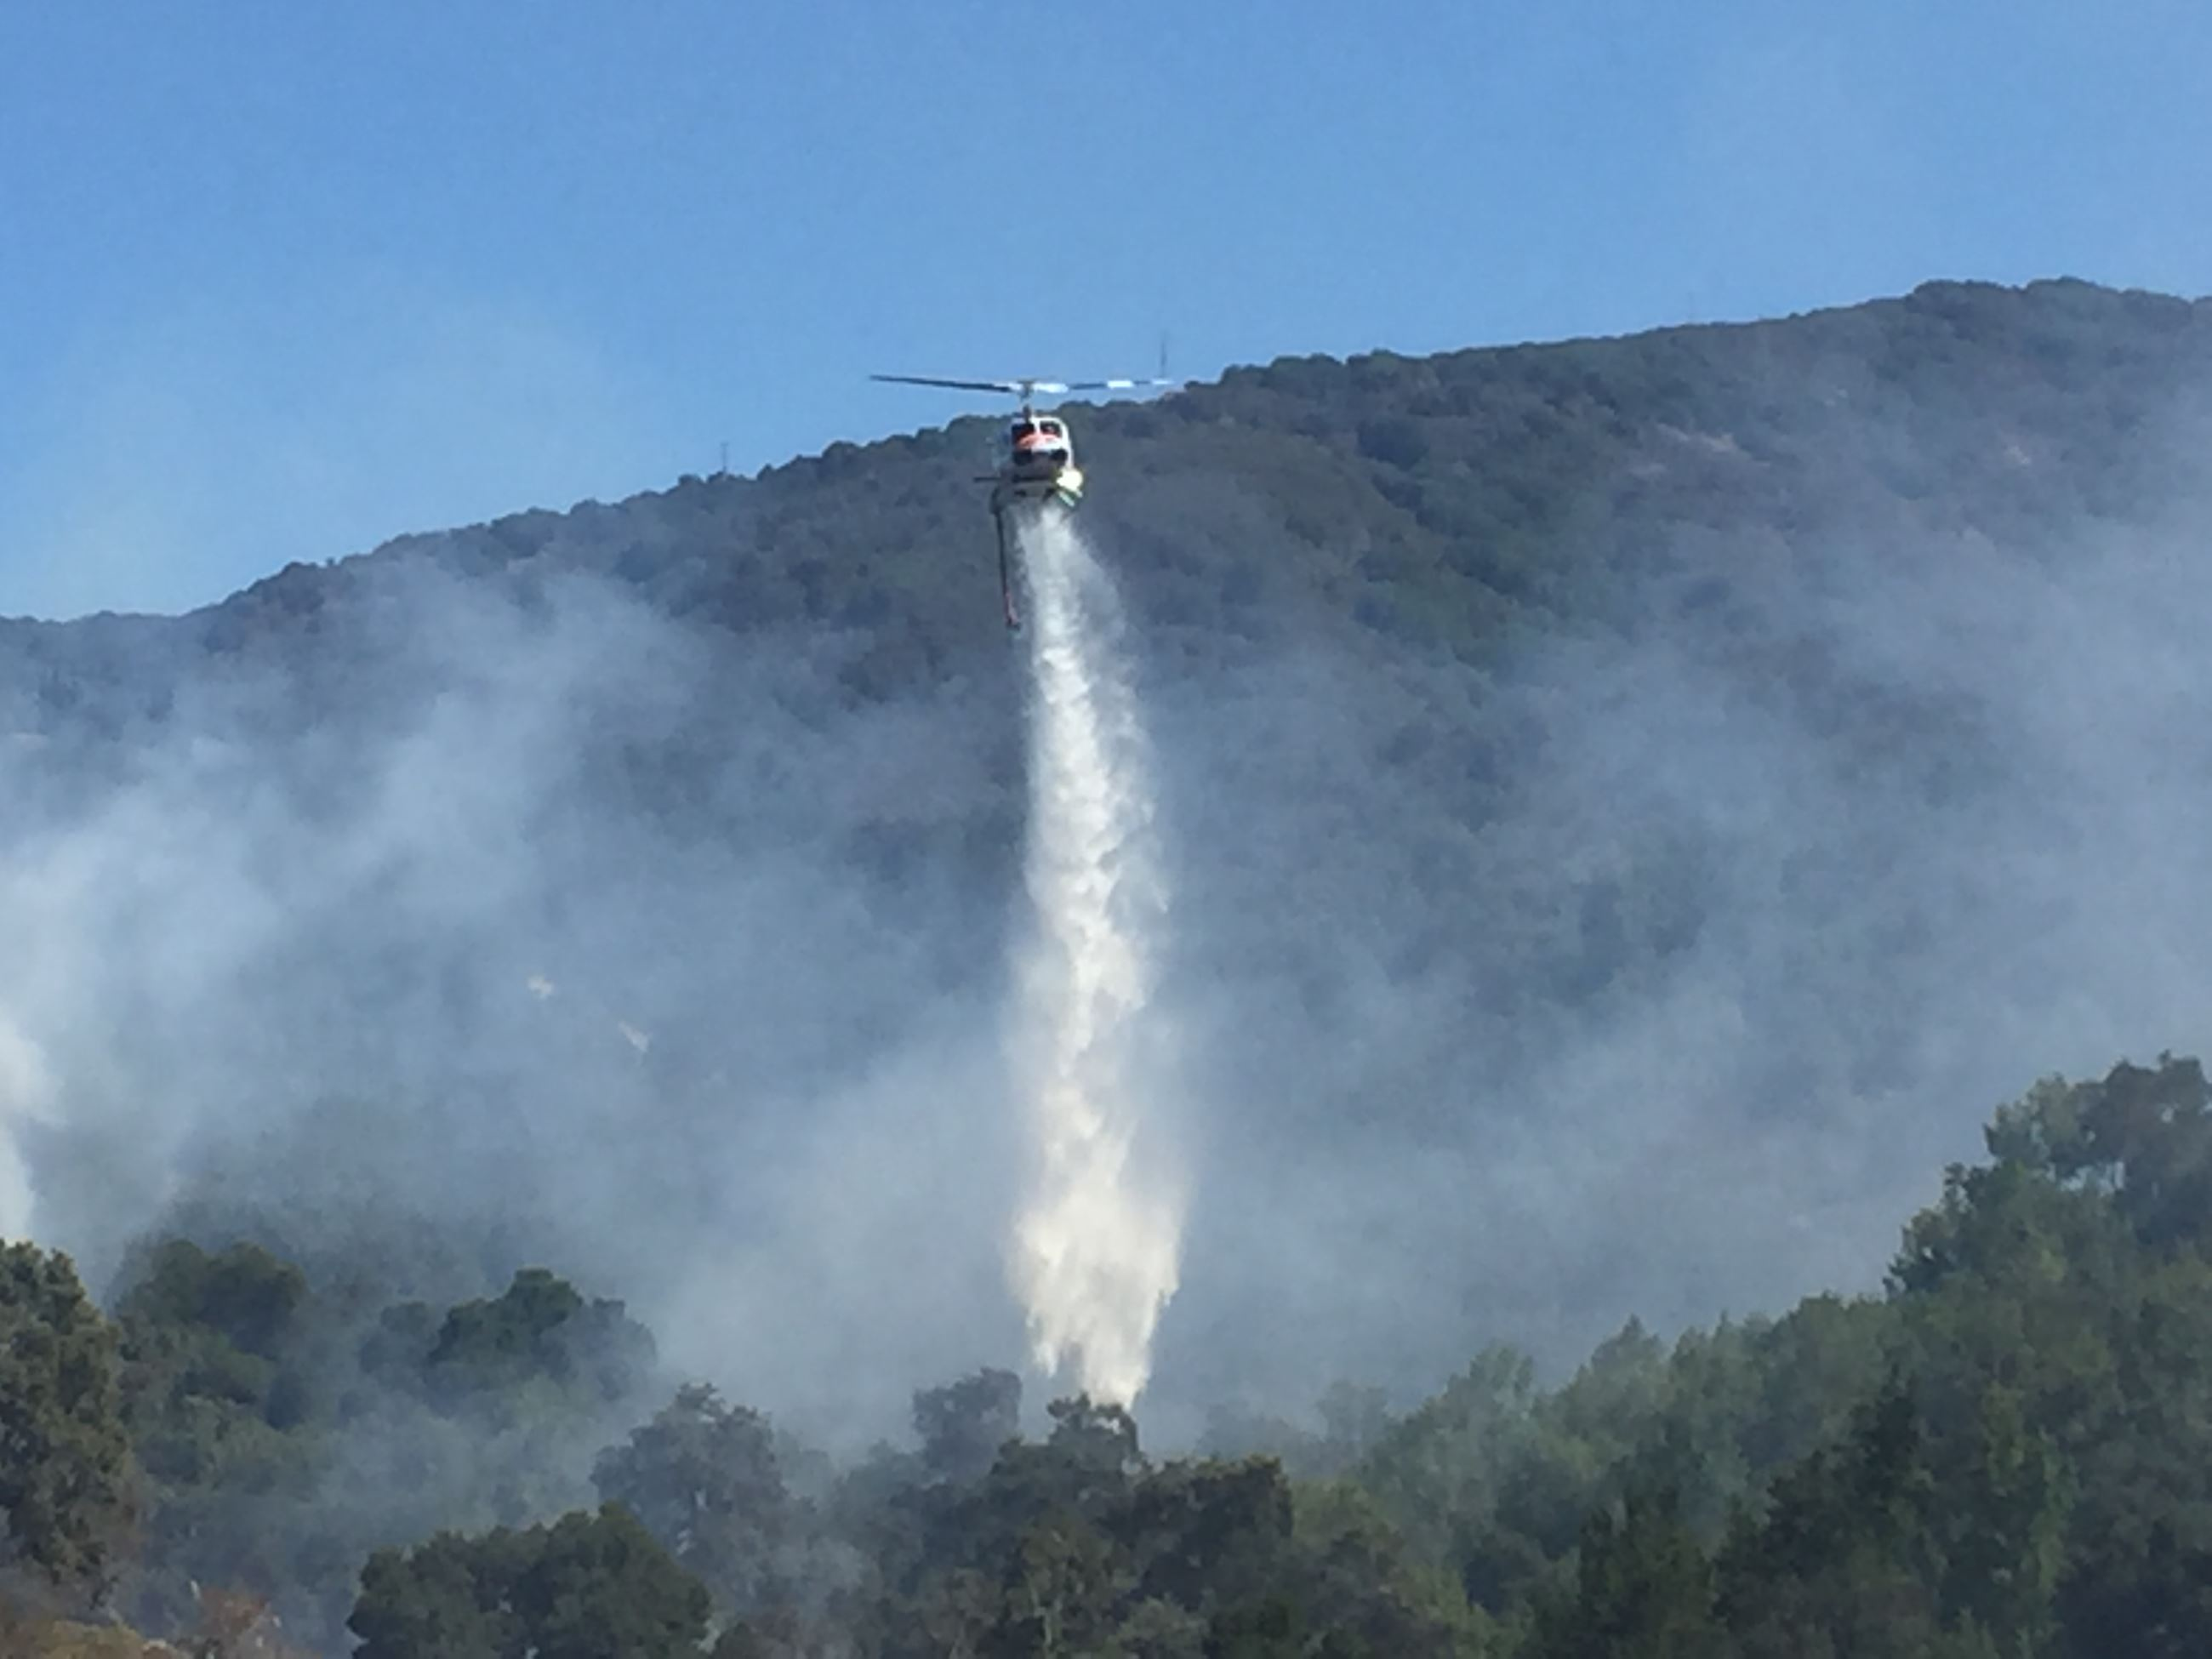 Helicopter Drops Fire Retardant Over Trees